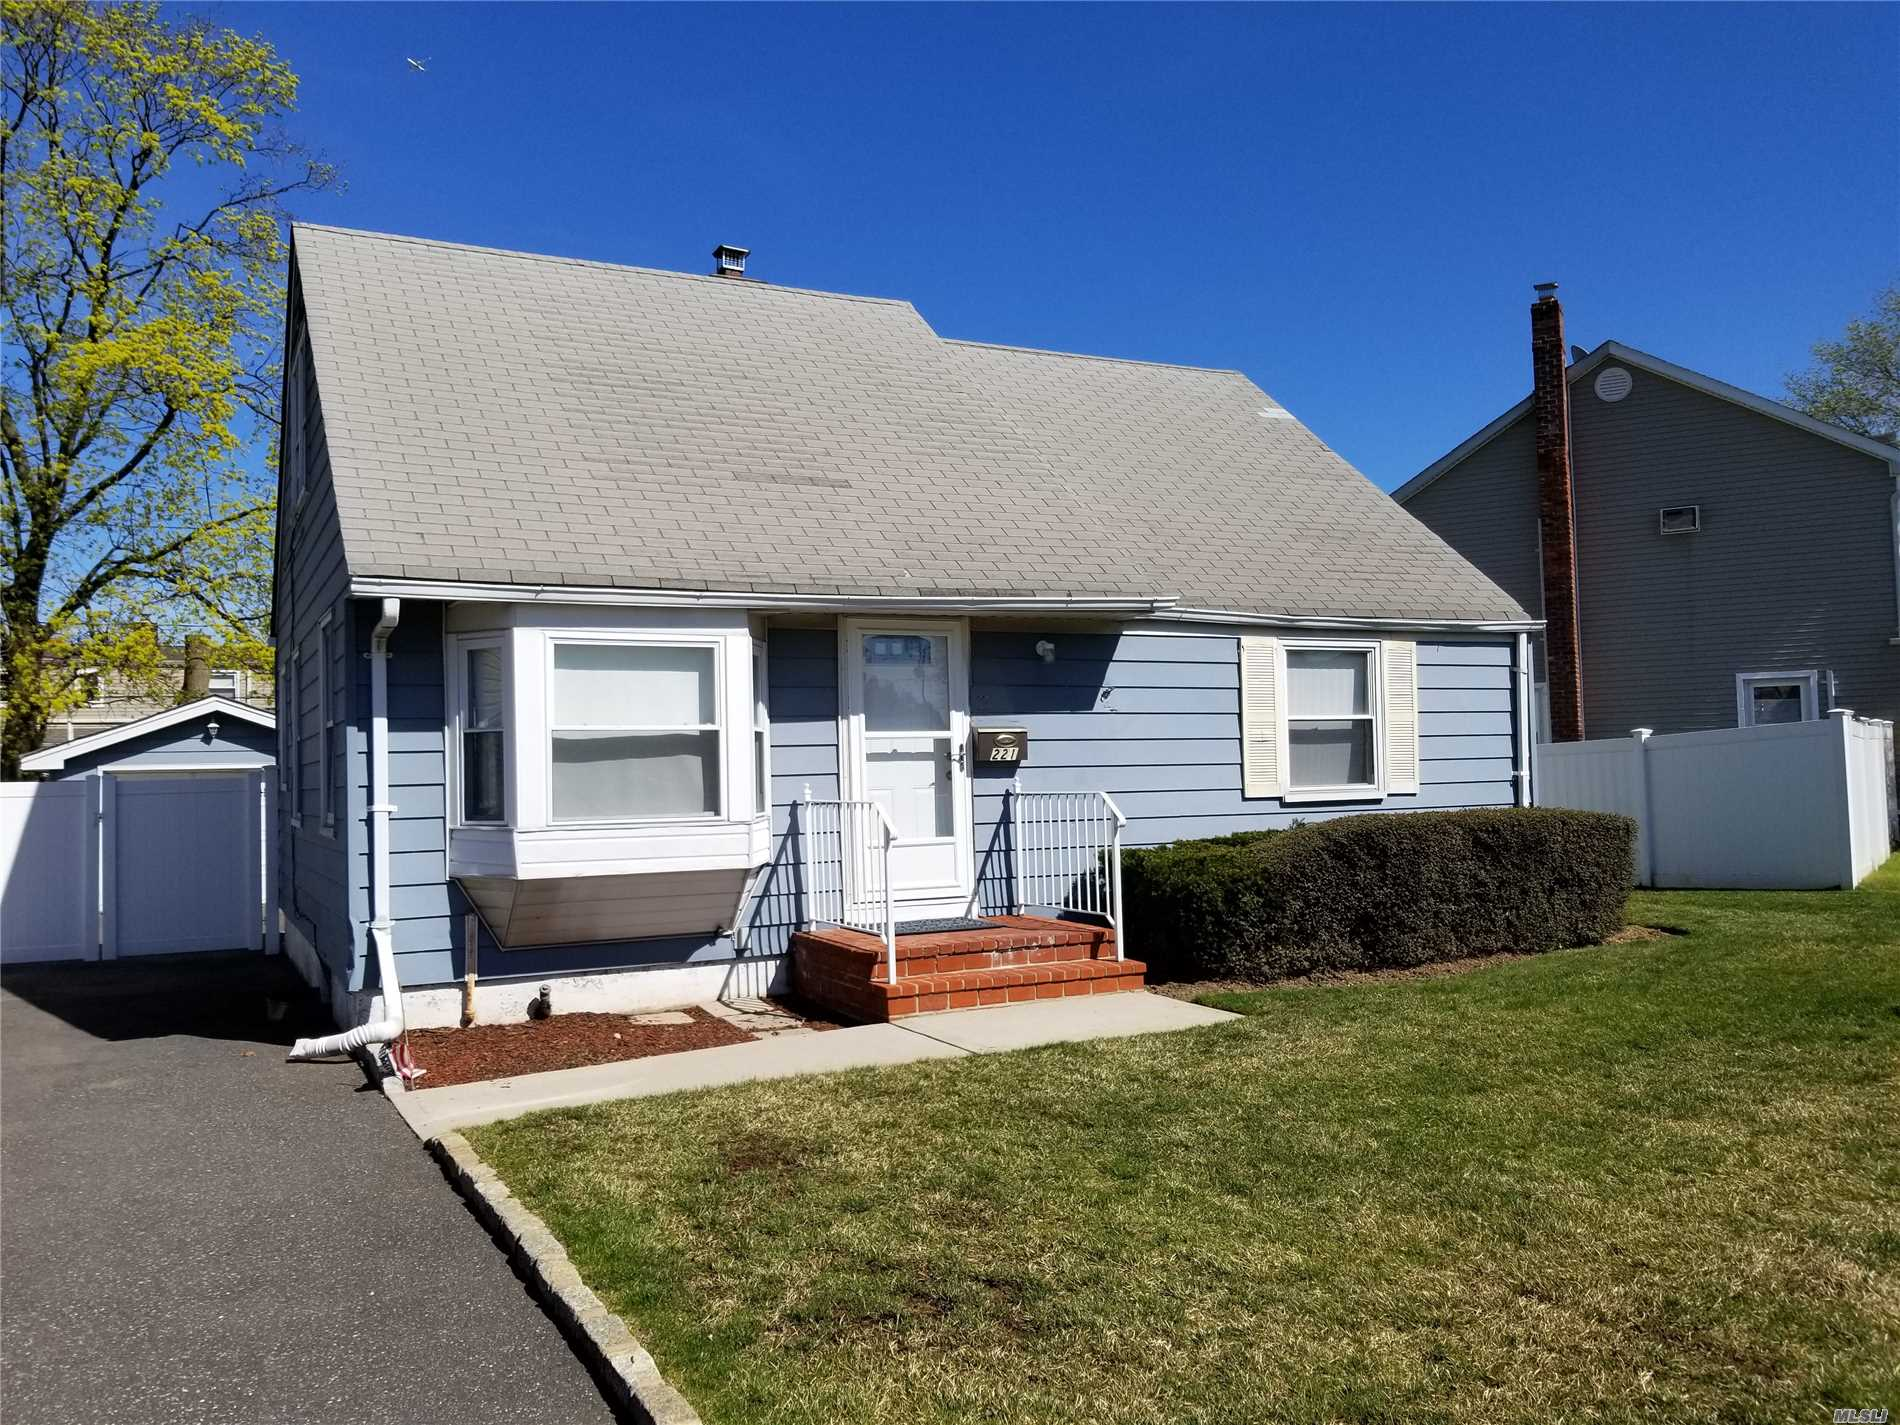 4 bedroom, 1.5 bath Cape, newly painted, newly carpeted, full unfinished basement, 1.5 car detached garage, very close to Bethpage LIIR station.